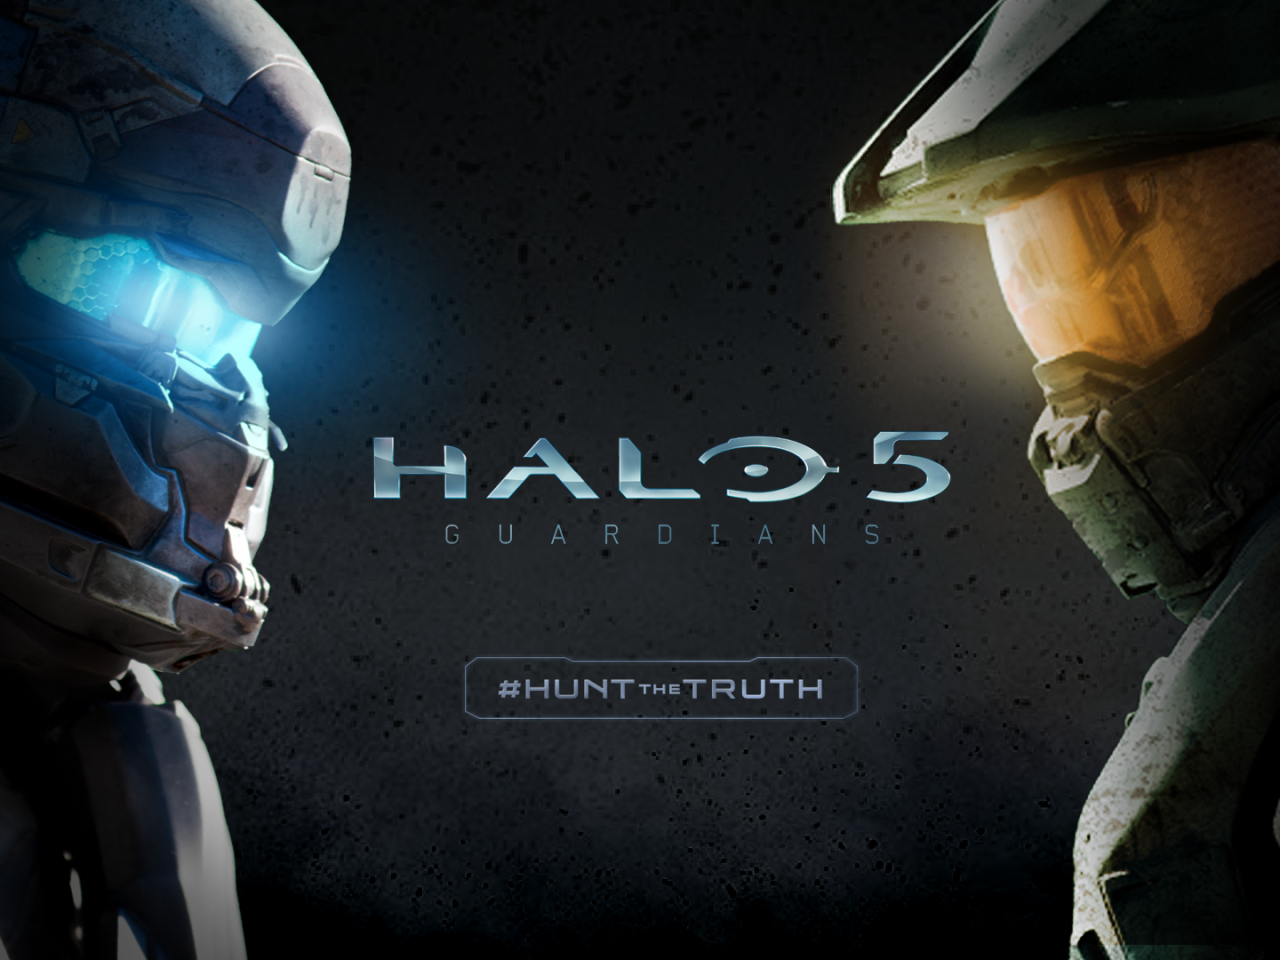 on September 23 2015 By Stephen Comments Off on Halo 5 Wallpaper HD 1280x960